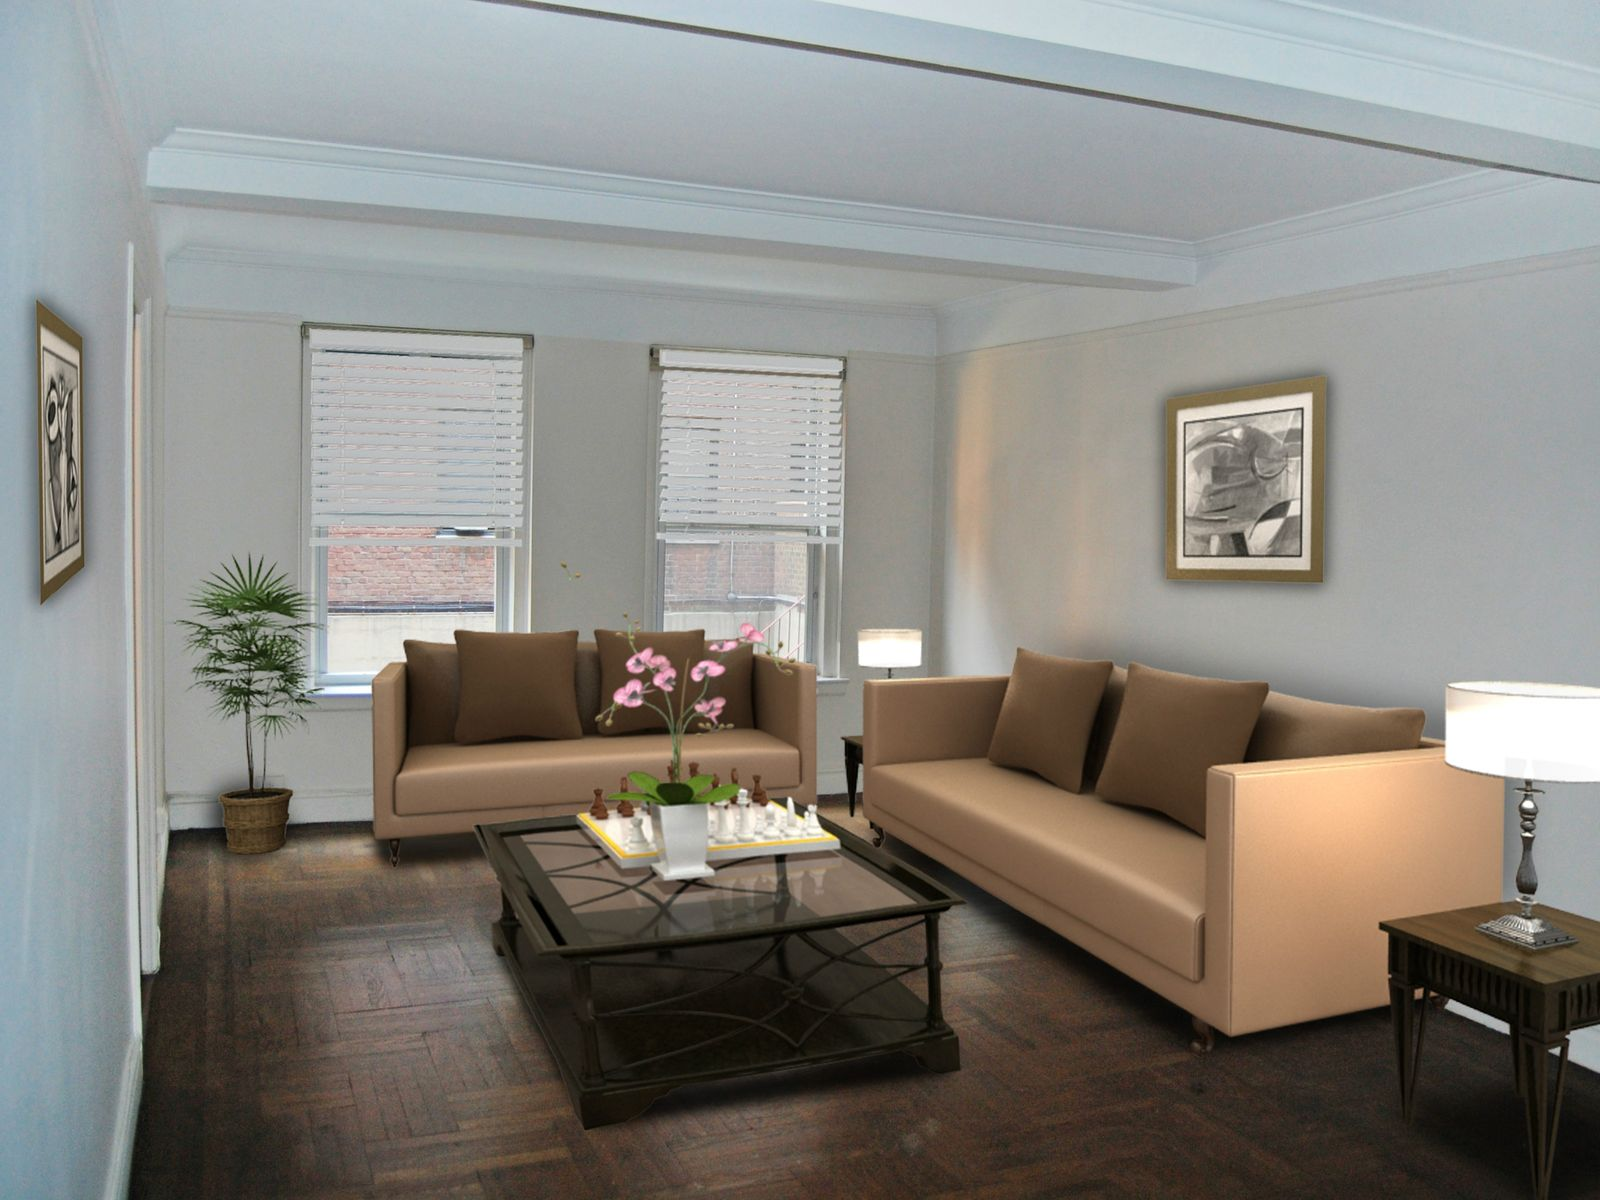 325 East 79th Street, Apt 2D, New York NY Cooperative - New York City Real Estate